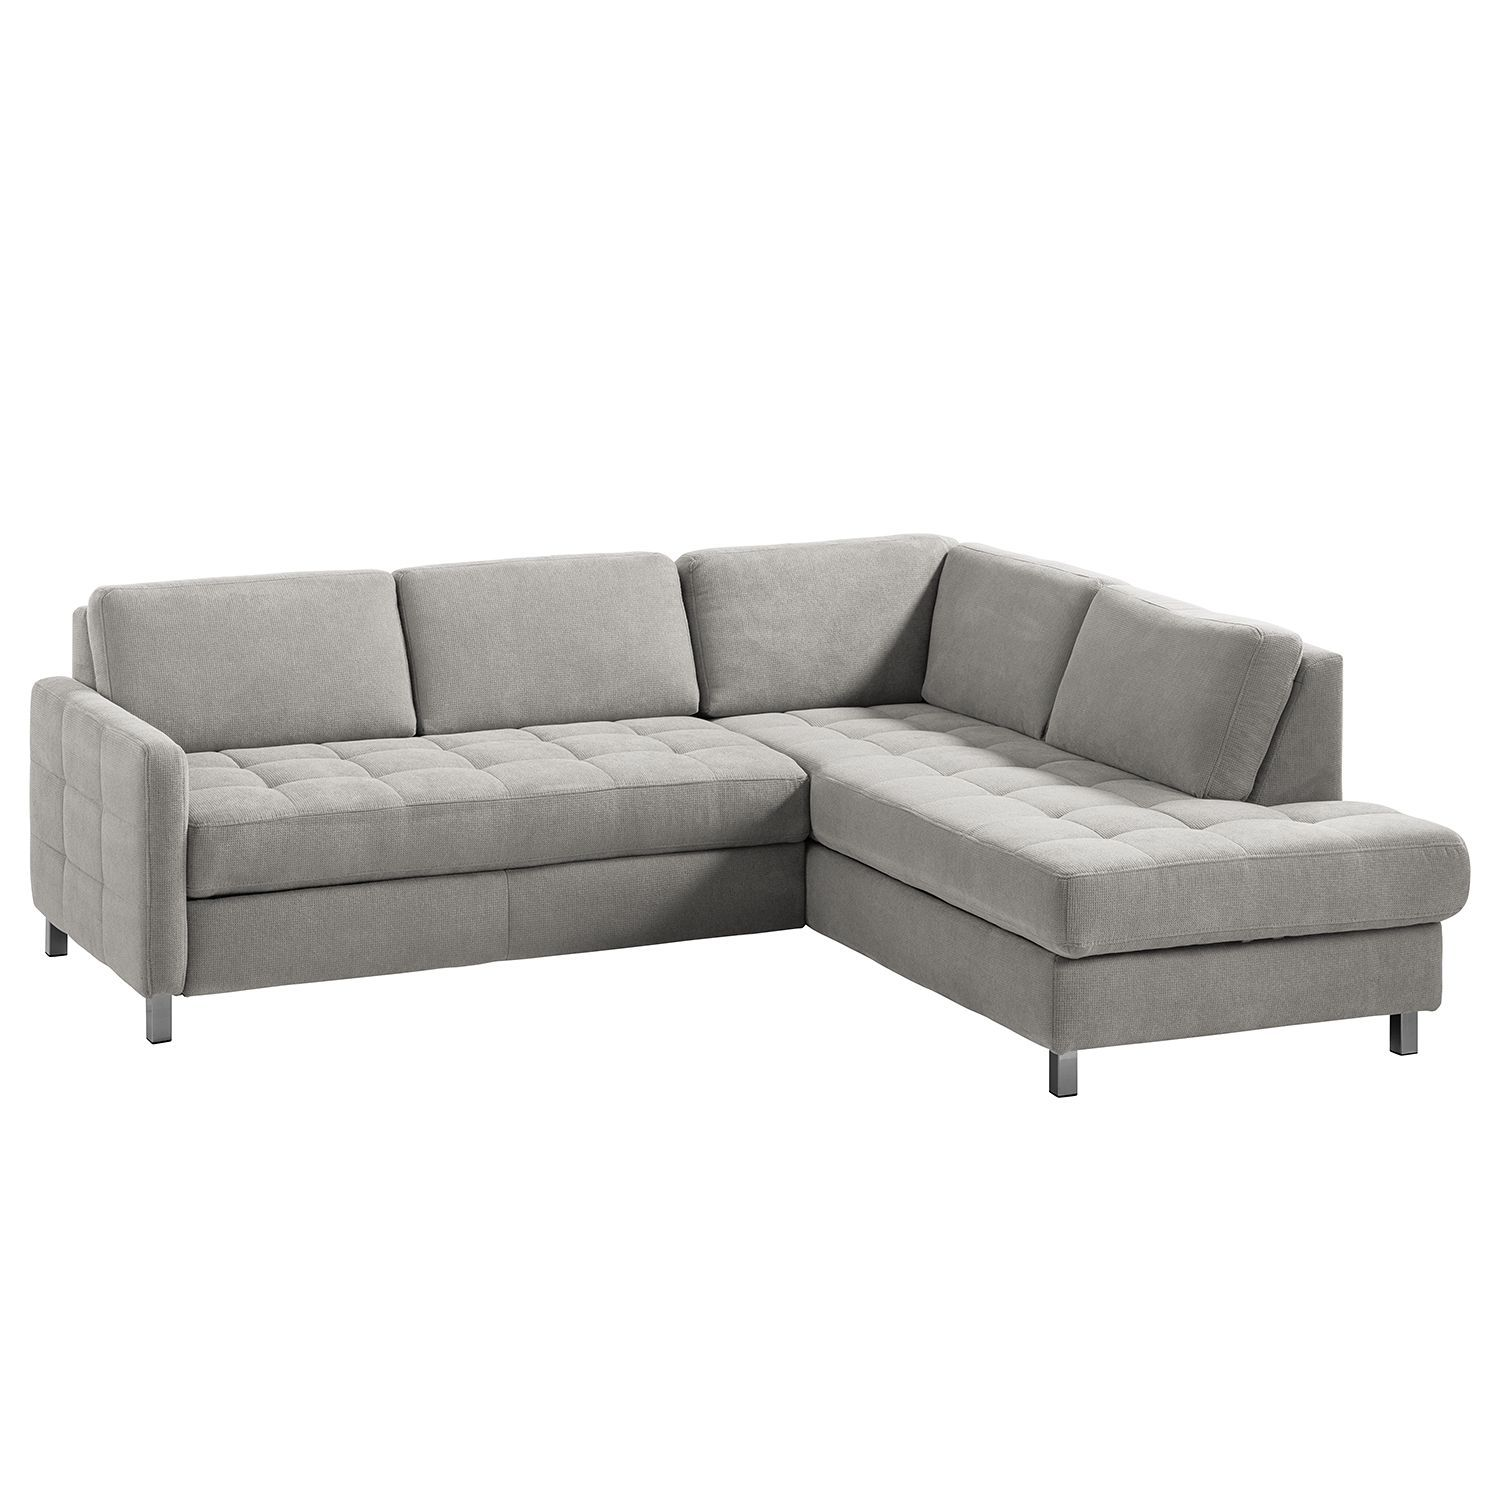 Ecksofa Clintwood Ecksofa Tanete Webstoff In 2019 Products Ecksofa Ecksofas Sofa